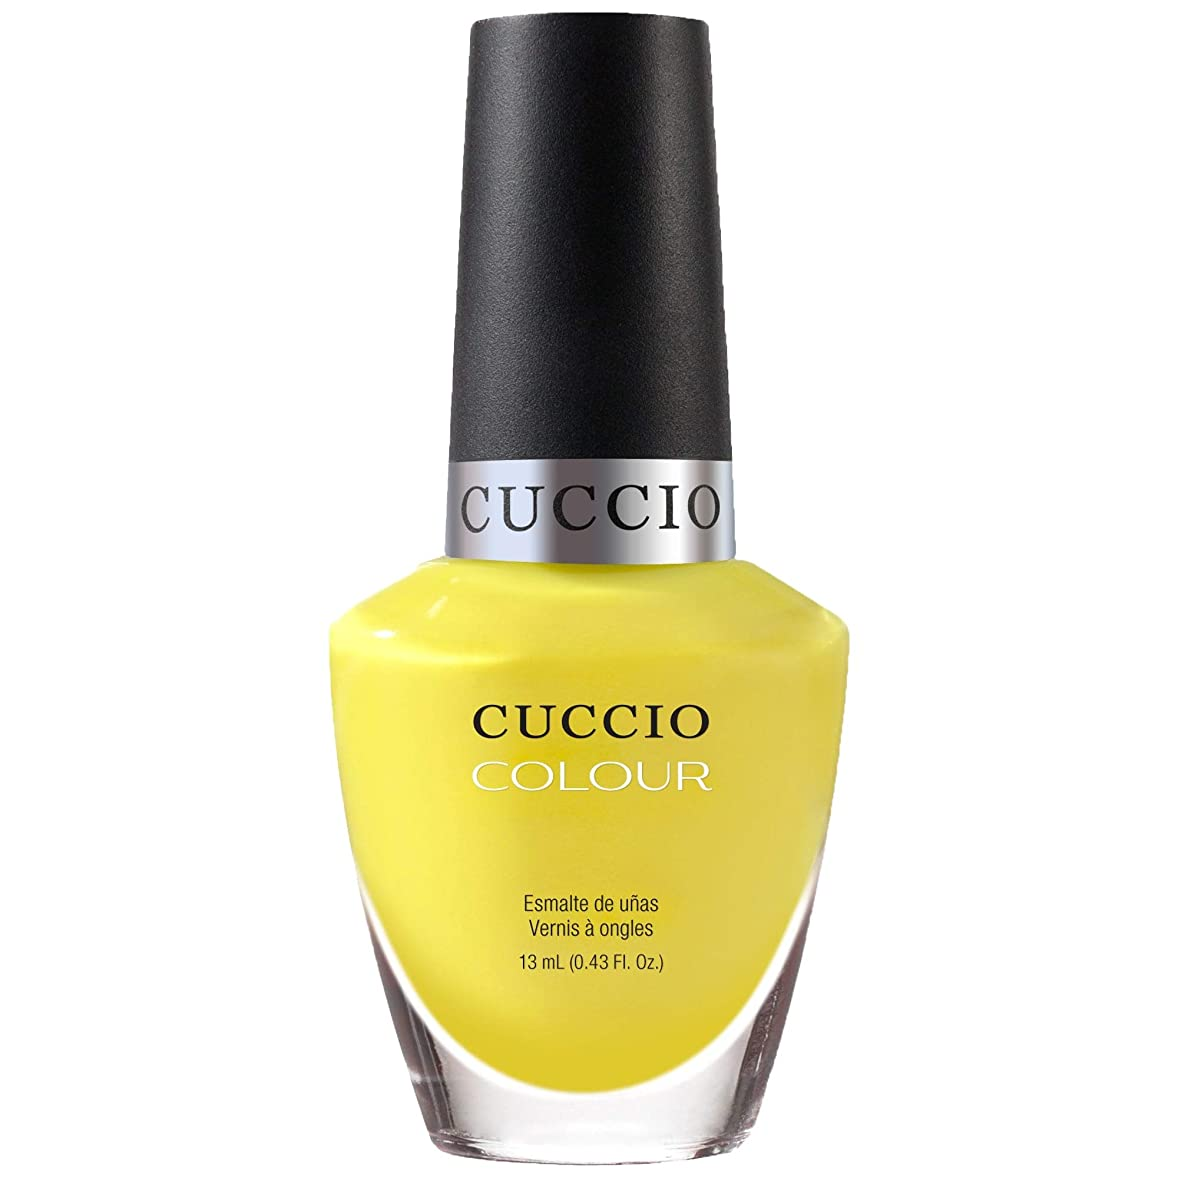 浮く子豚賞賛するCuccio Colour Gloss Lacquer - Lemon Drop Me A Line - 0.43oz / 13ml